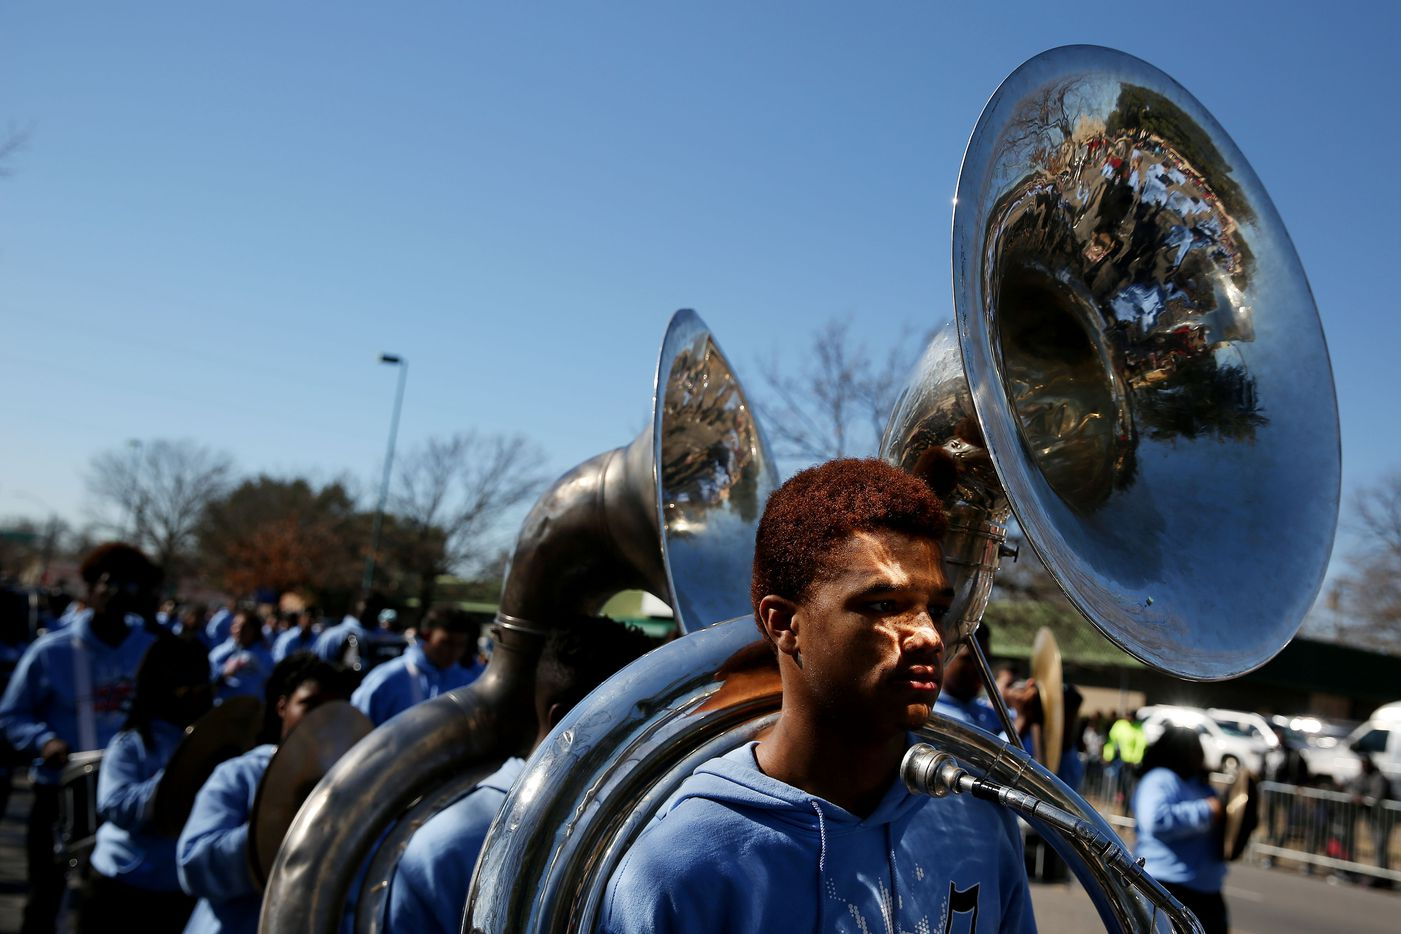 Skyline High School marching band participates in the parade.